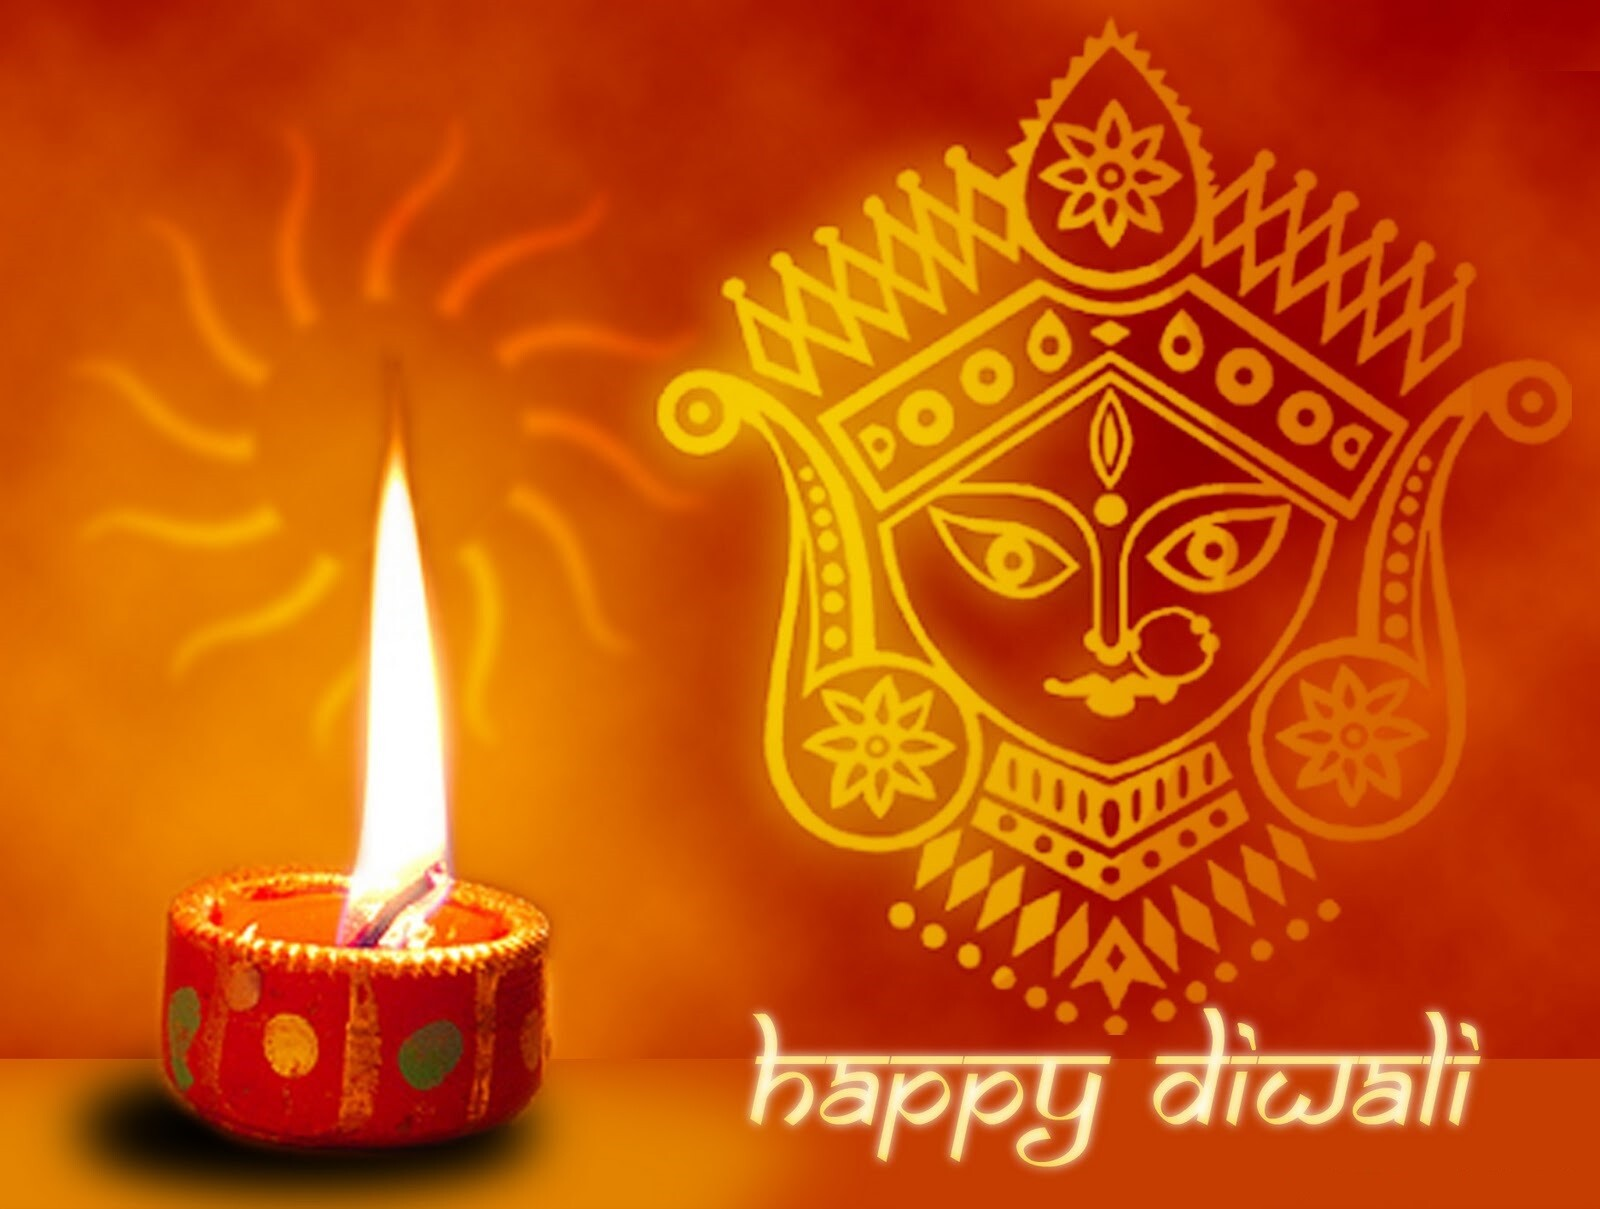 Diwali Greetings Festivals Celebrations Greetingcards Hd Wallpapers